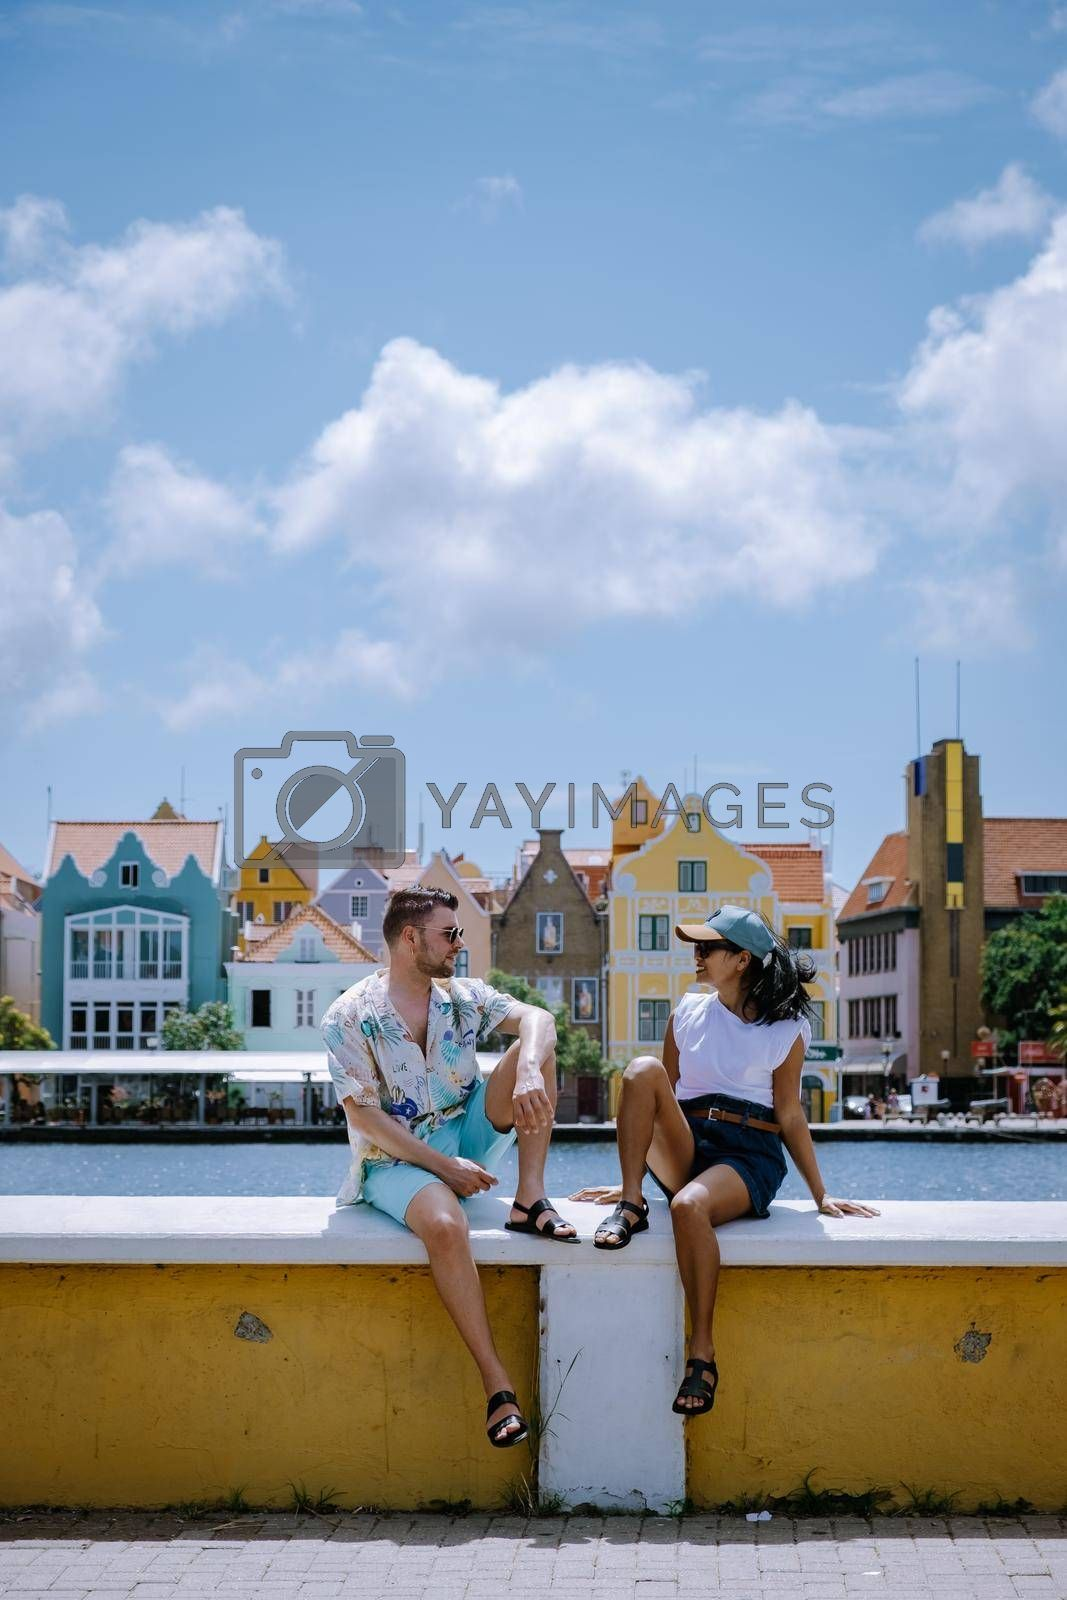 Curacao, Netherlands Antilles View of colorful buildings of downtown Willemstad Curacao Caribbean Island, couple men and woman mid age visiting Willemstad